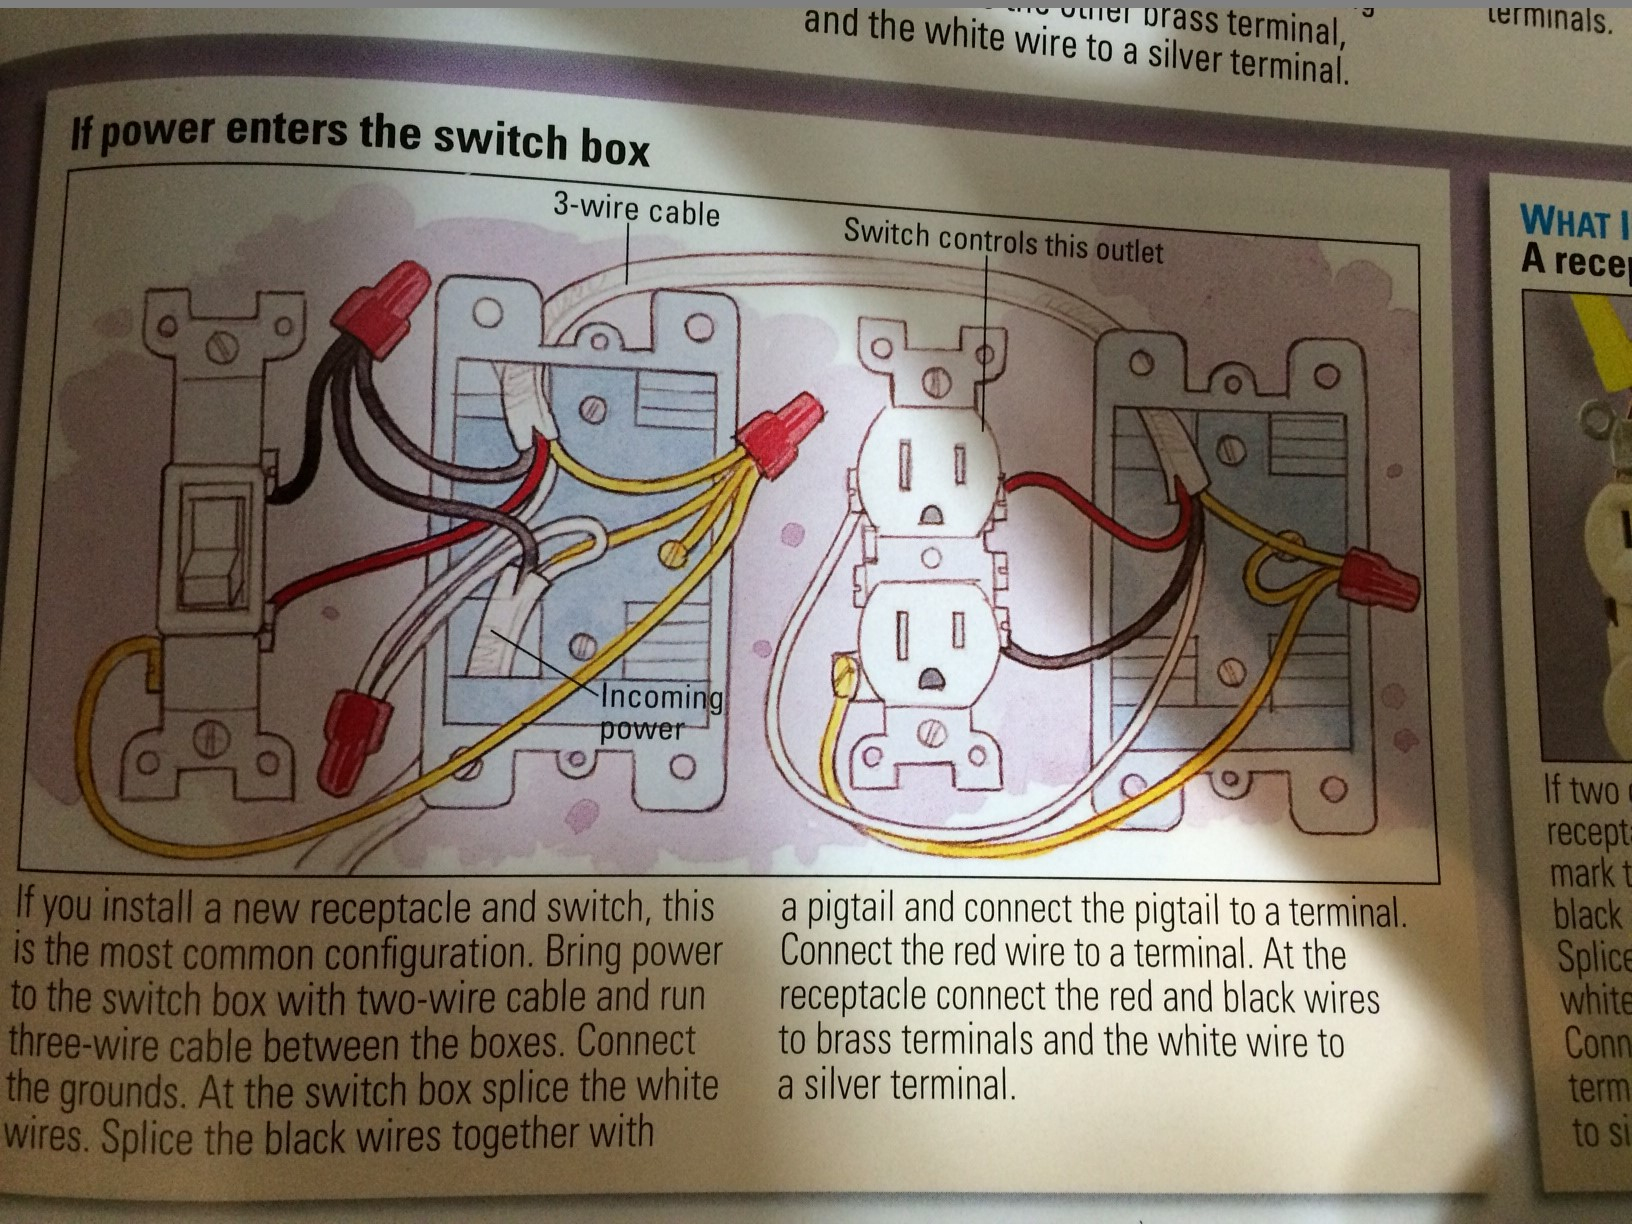 Electrical - How Should I Wire 2 Switches That Control 1 Light And 1 - Wiring A Switched Outlet Wiring Diagram – Power To Receptacle